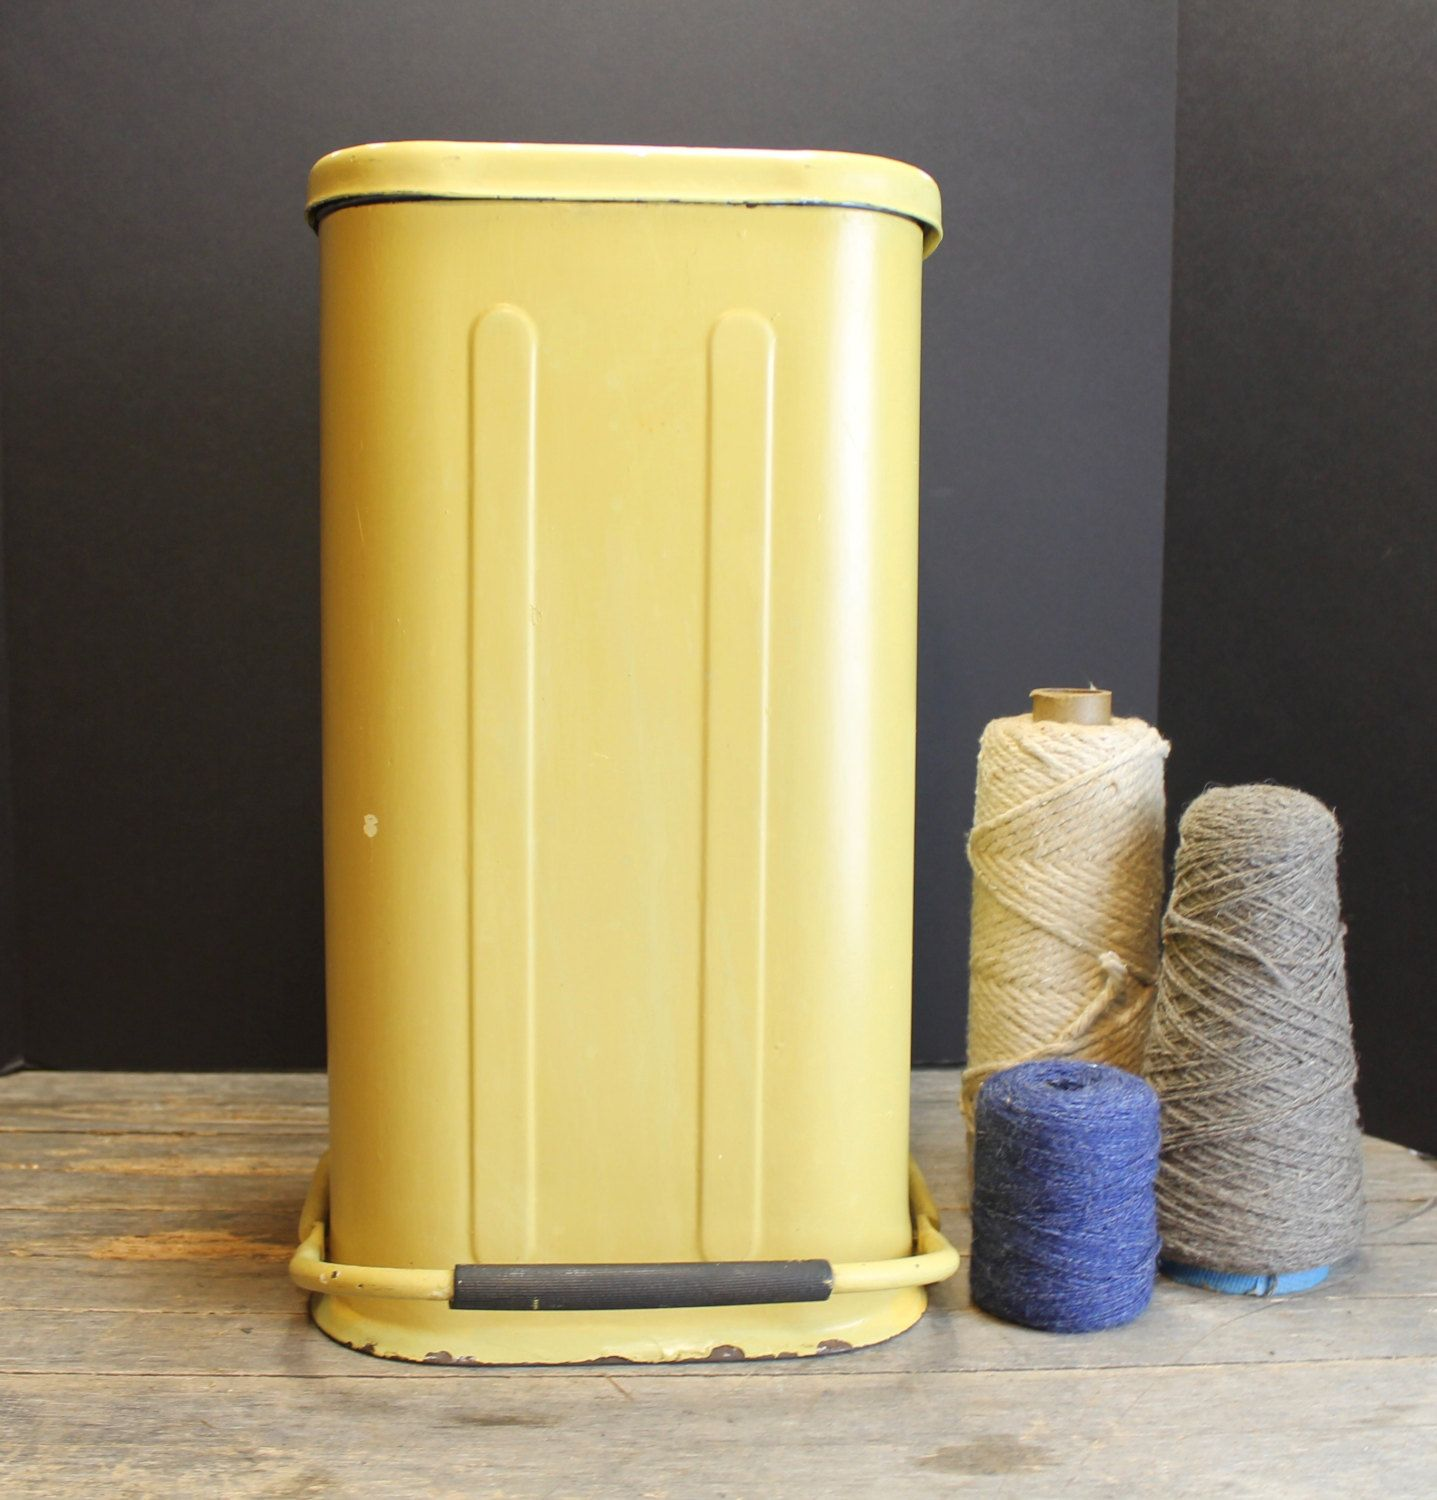 Vintage Yellow Gold Step Up Trashcan Retro Step Trash Can Retro Kitchen Decor By Mybarn On Etsy Retro Kitchen Decor Retro Kitchen Kitchen Trash Cans